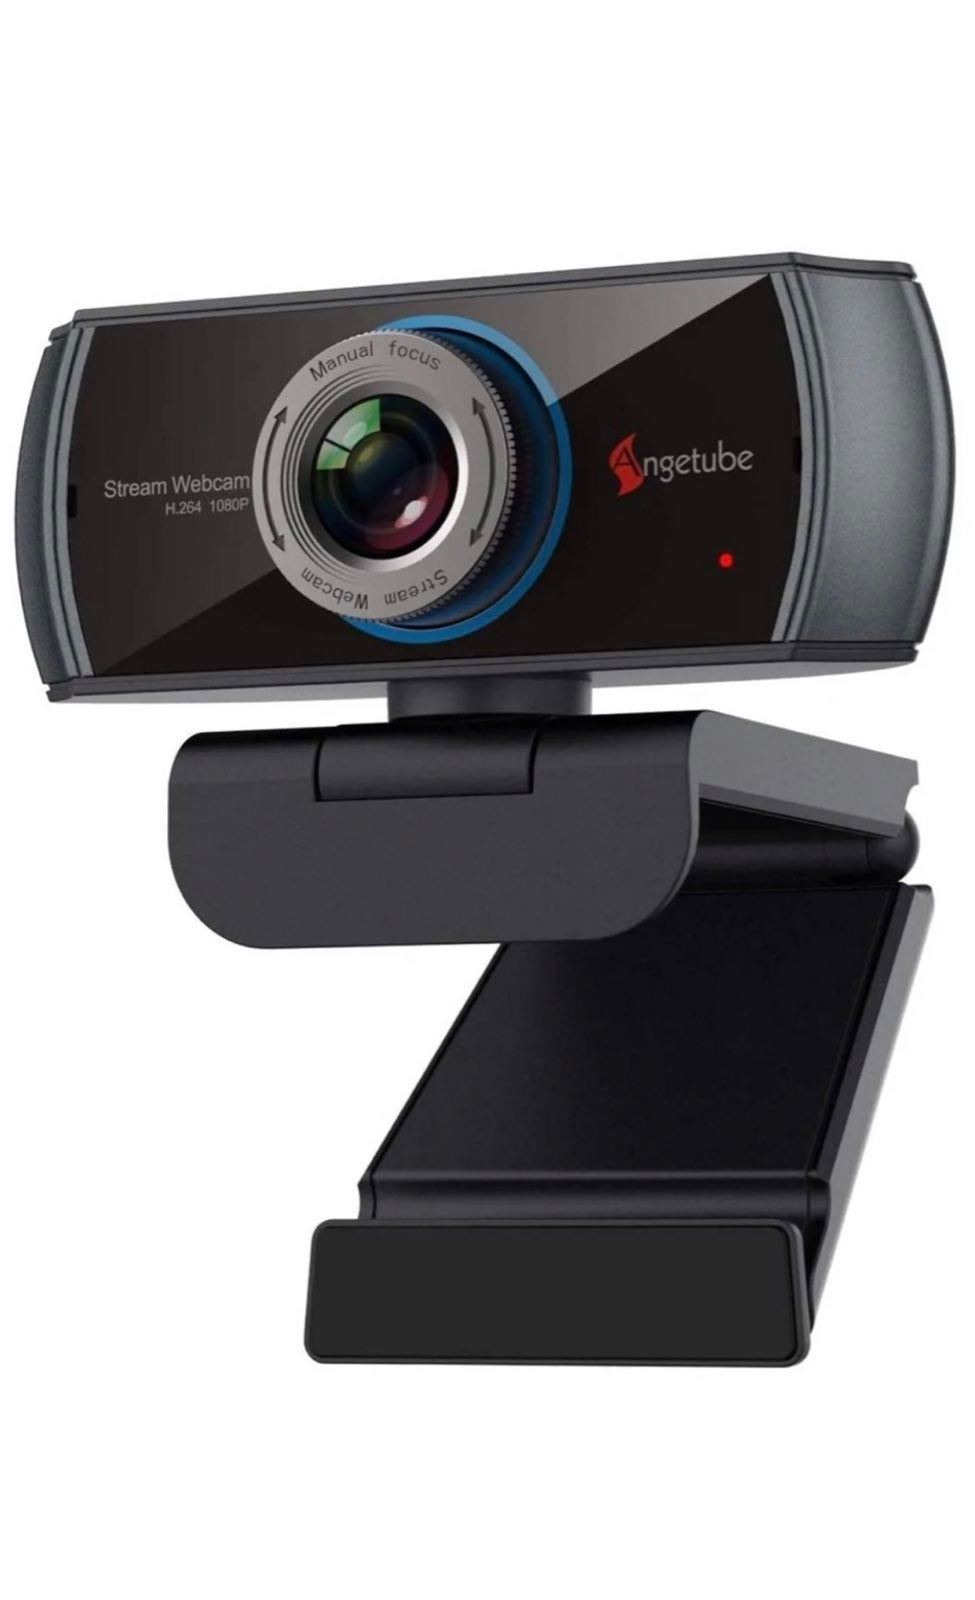 HD Webcam (Buy more than 1 to save)